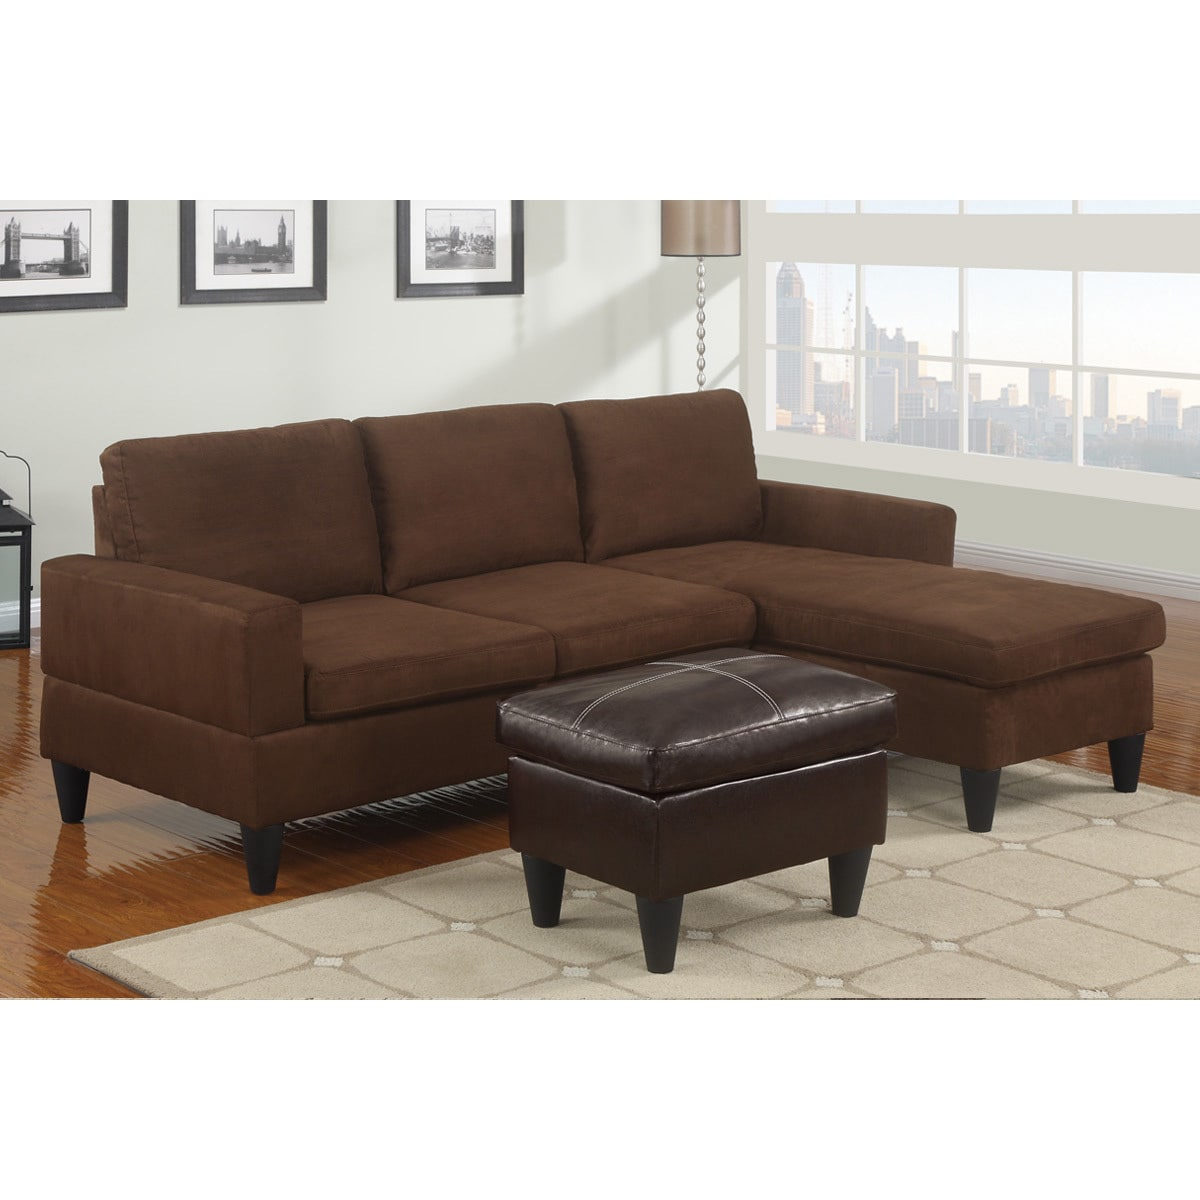 Shop Reversible All In One Sectional Sofa Free Shipping Today